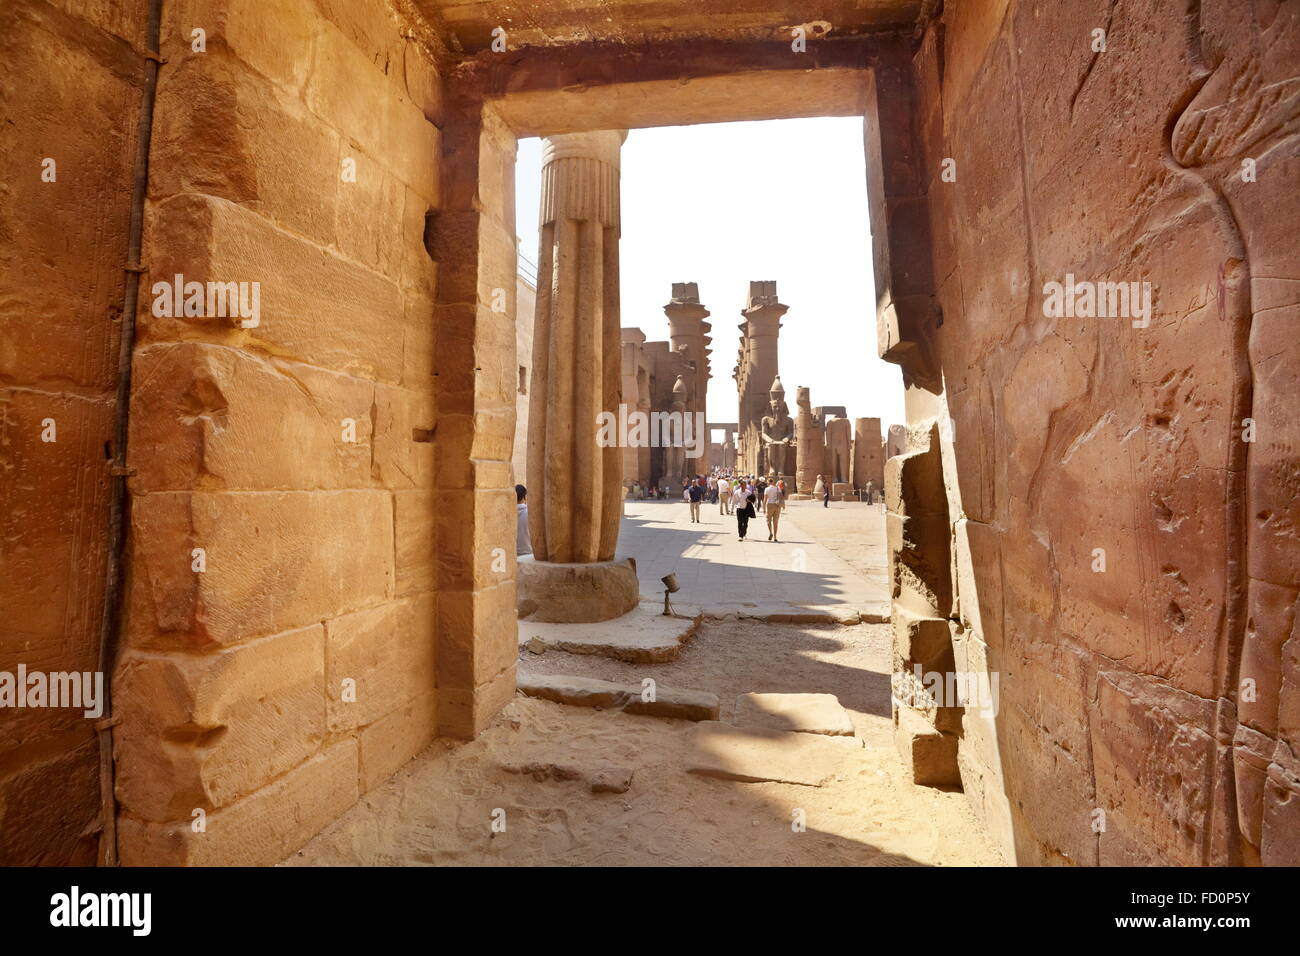 The interior of the  Luxor Temple, Luxor, Egypt - Stock Image